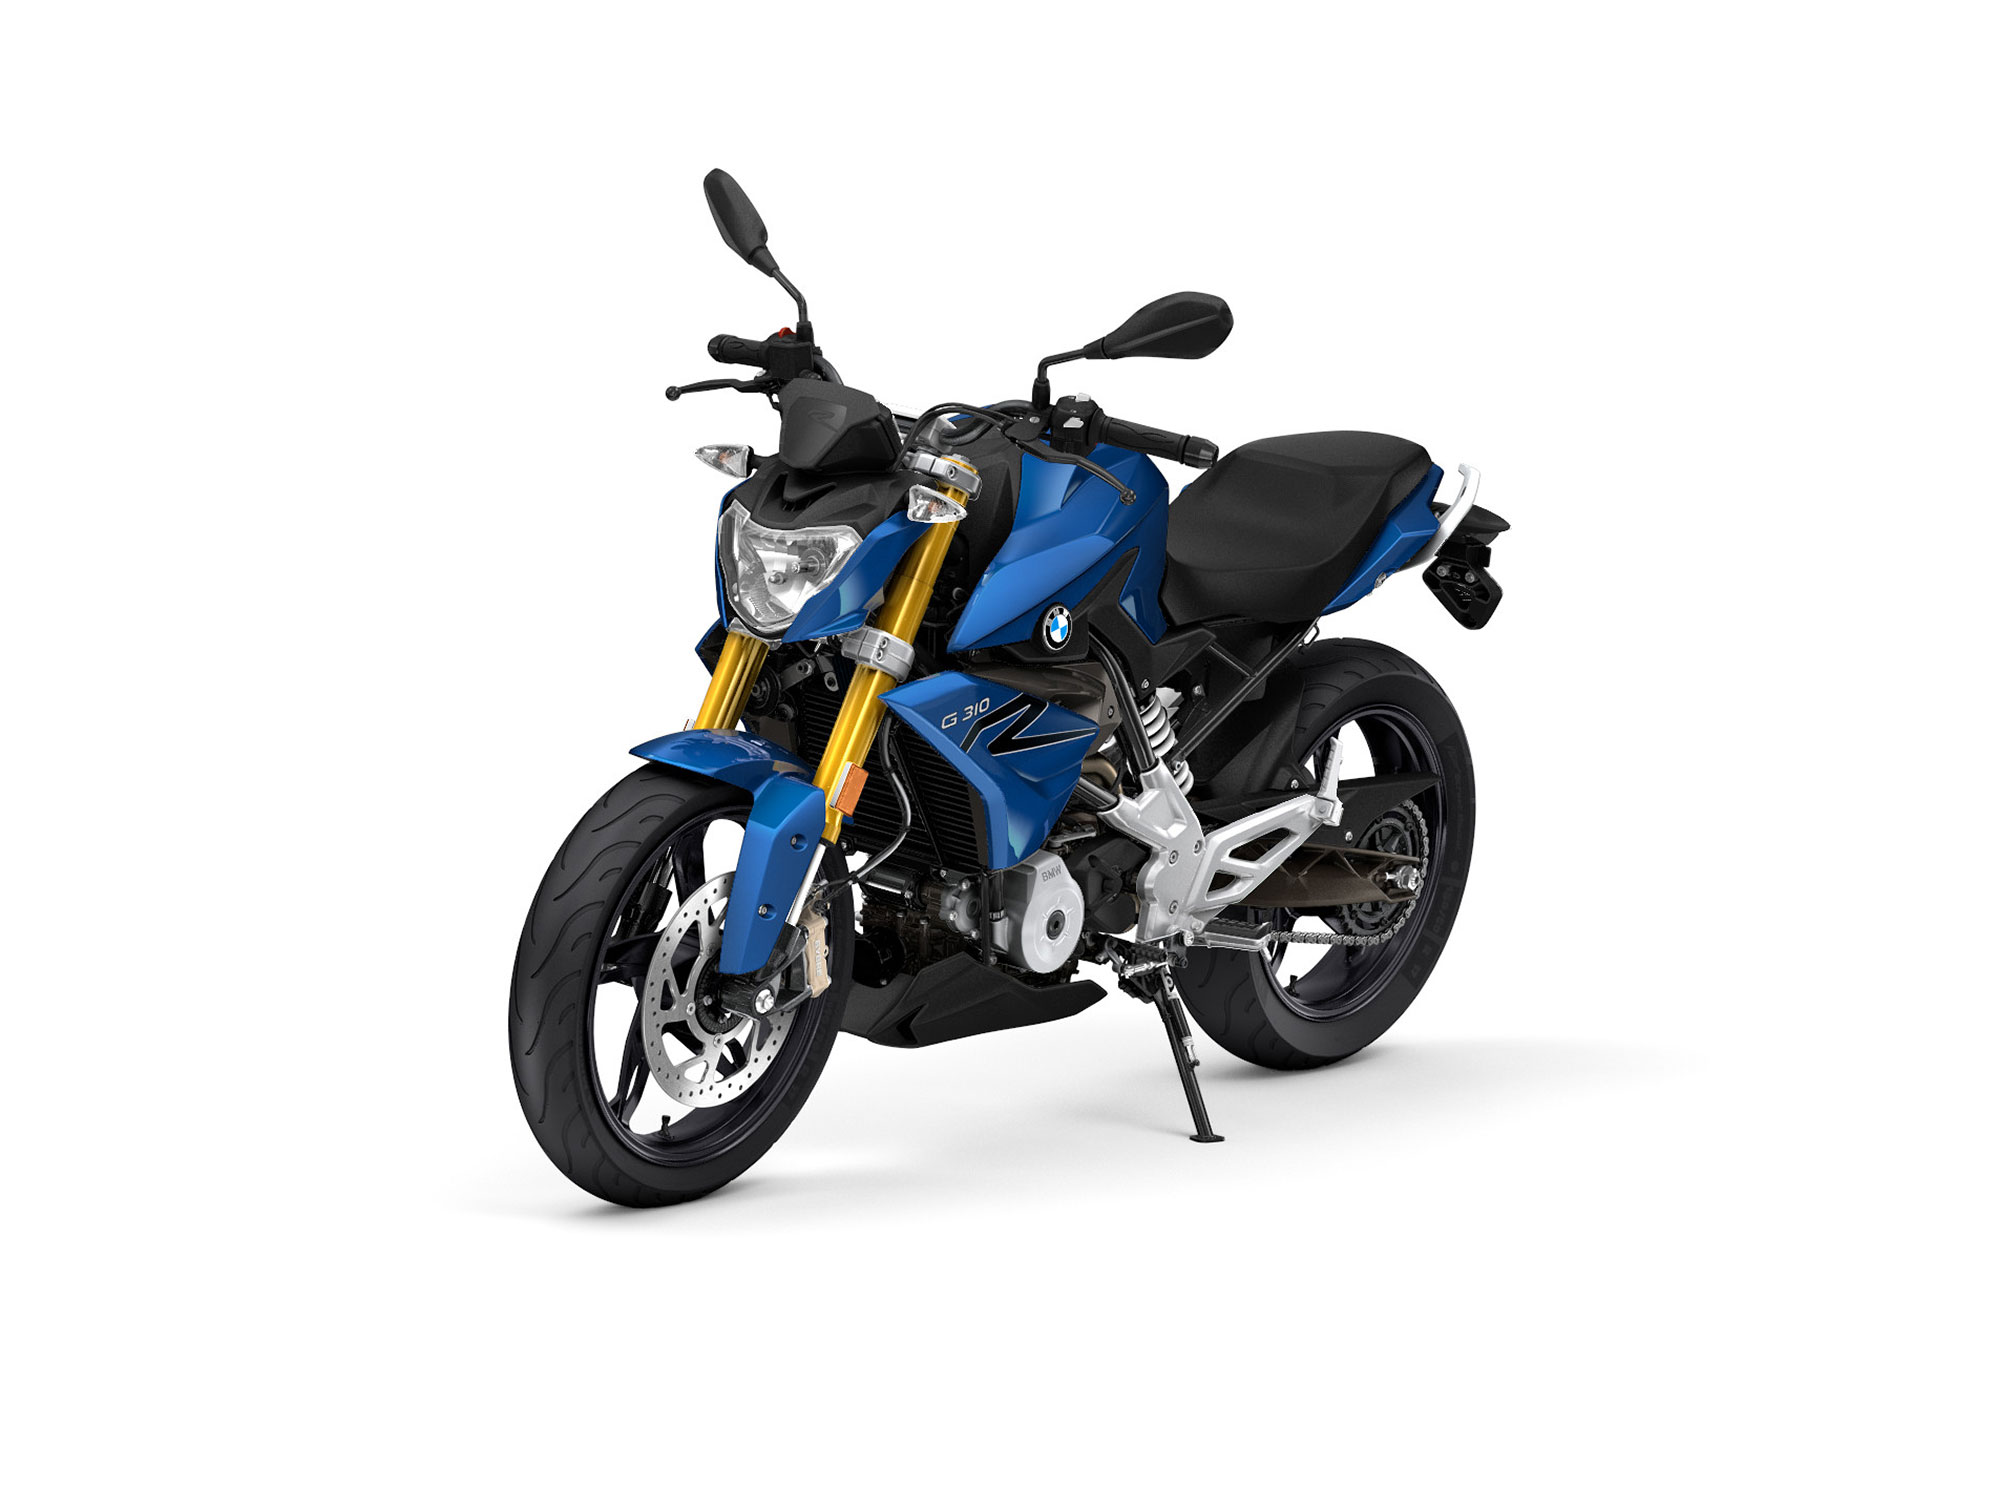 2016 BMW G310R Review